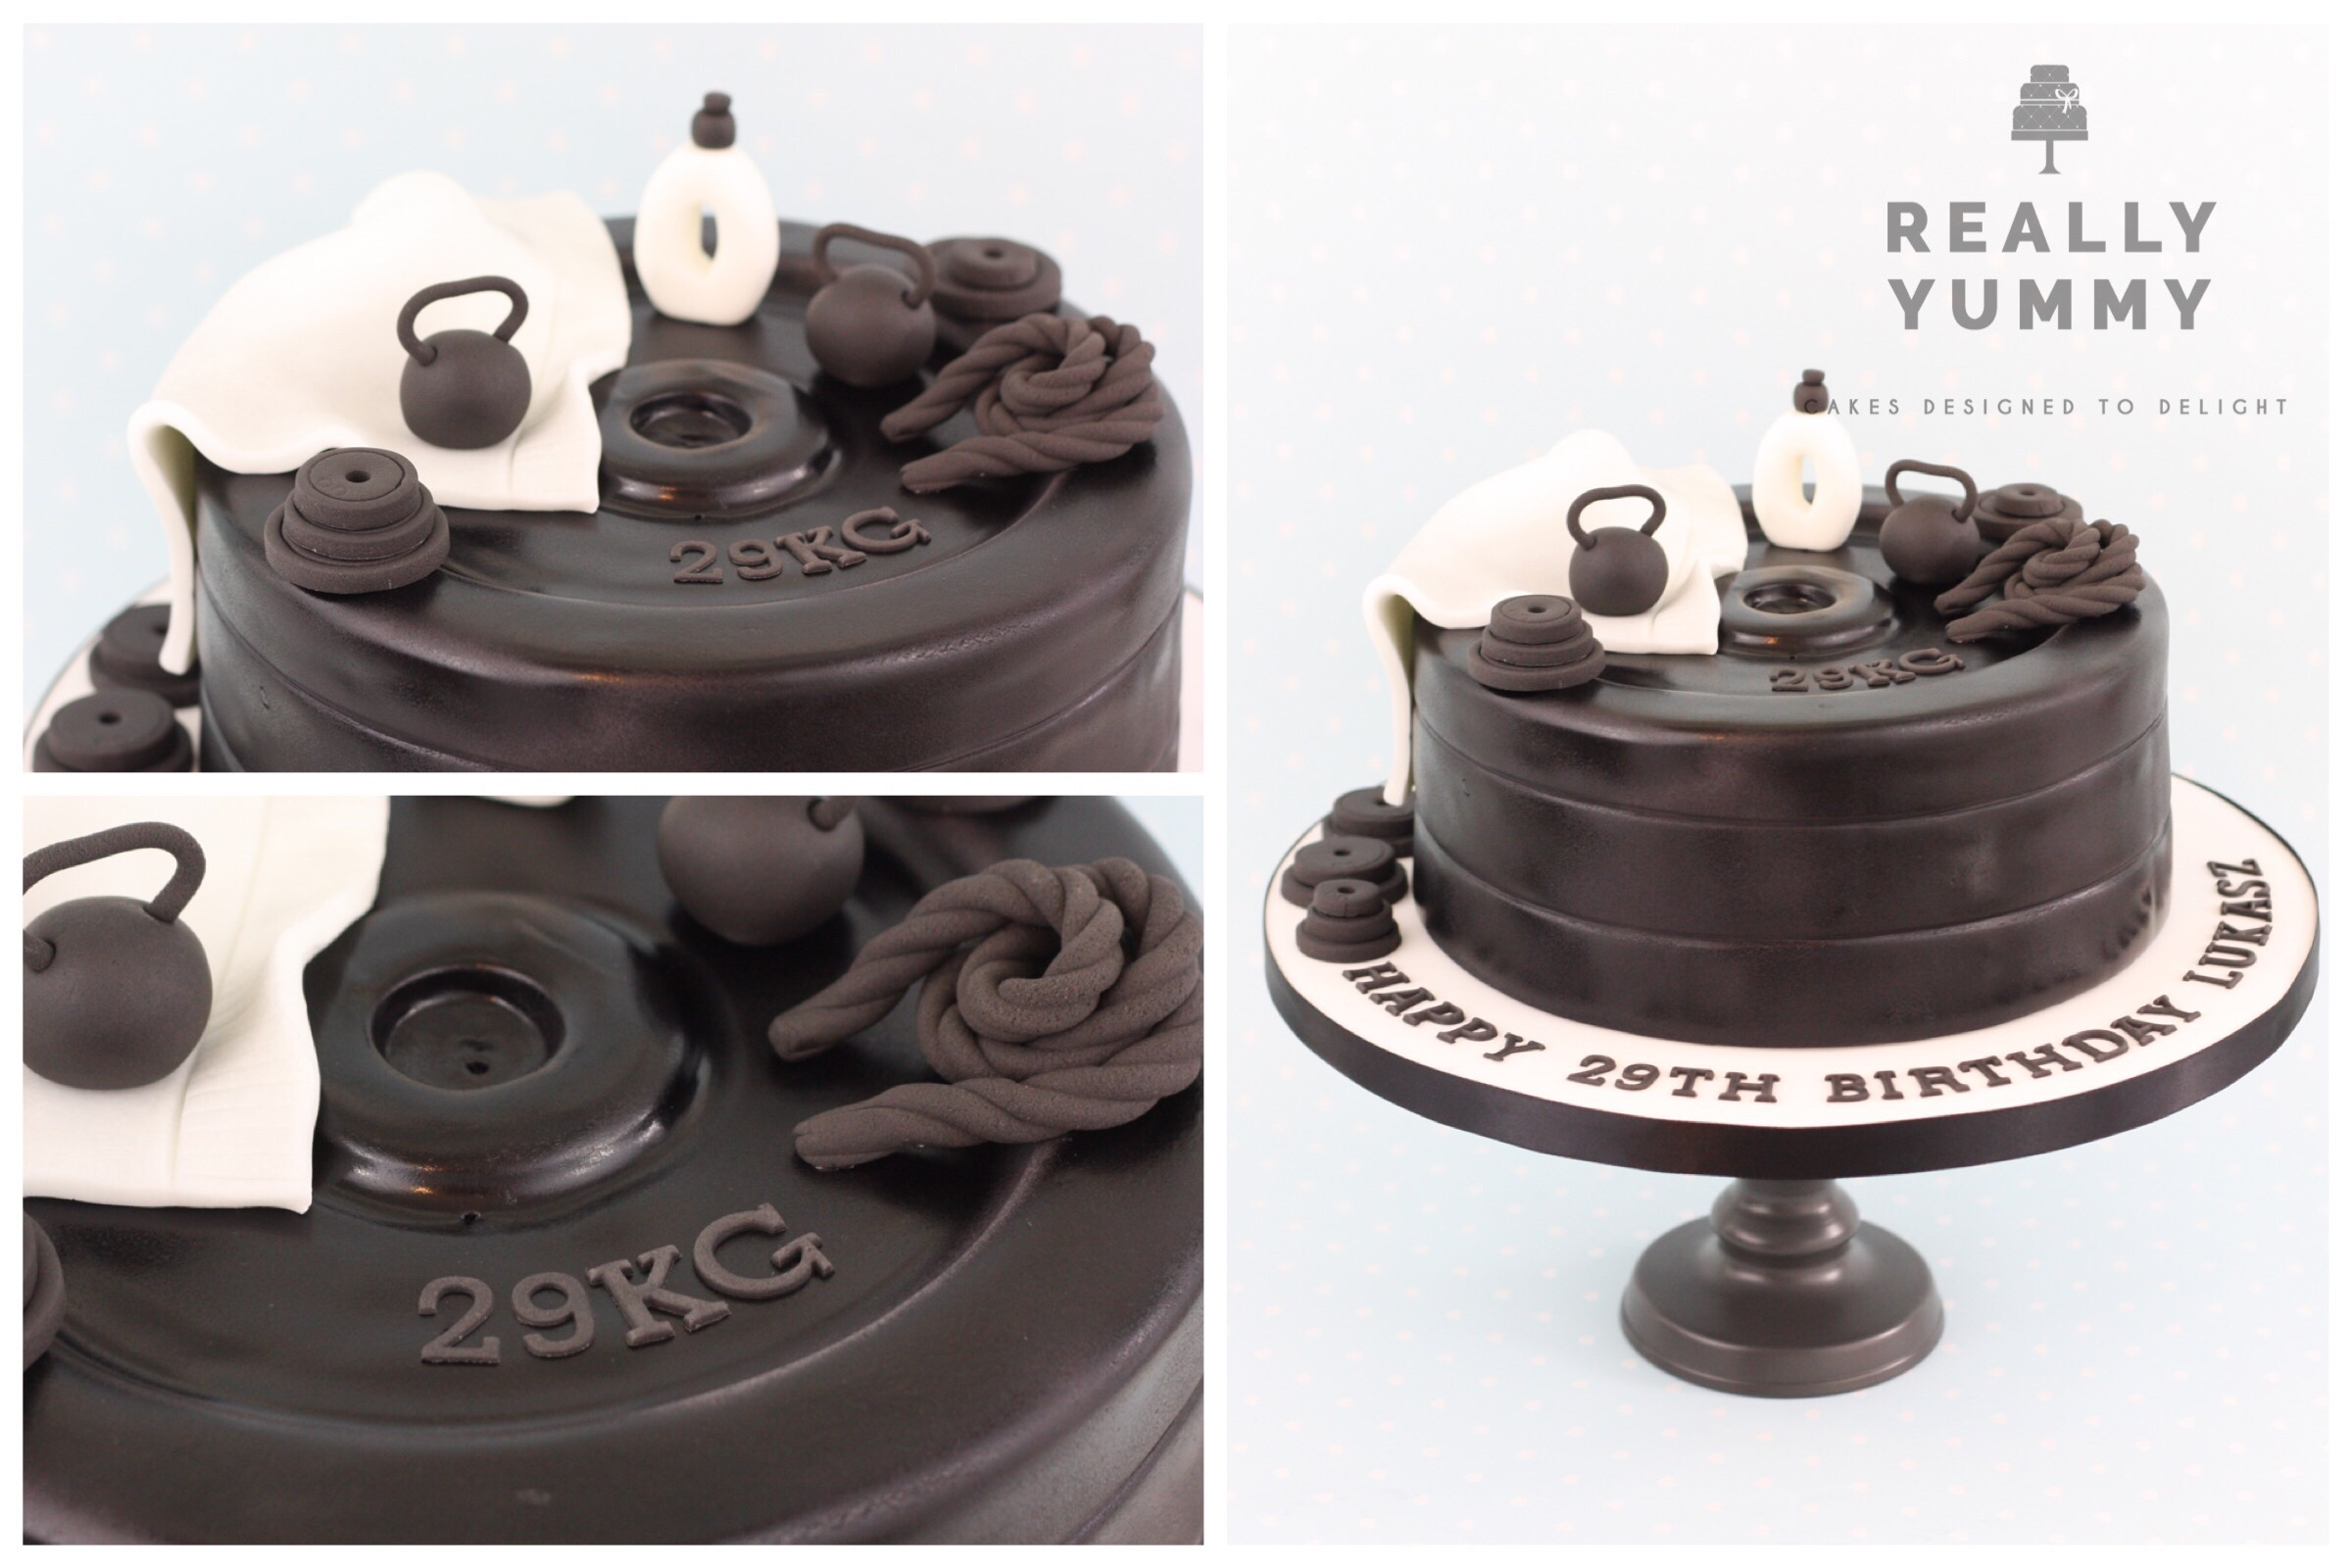 Fitness cake, with weights and gym equipment